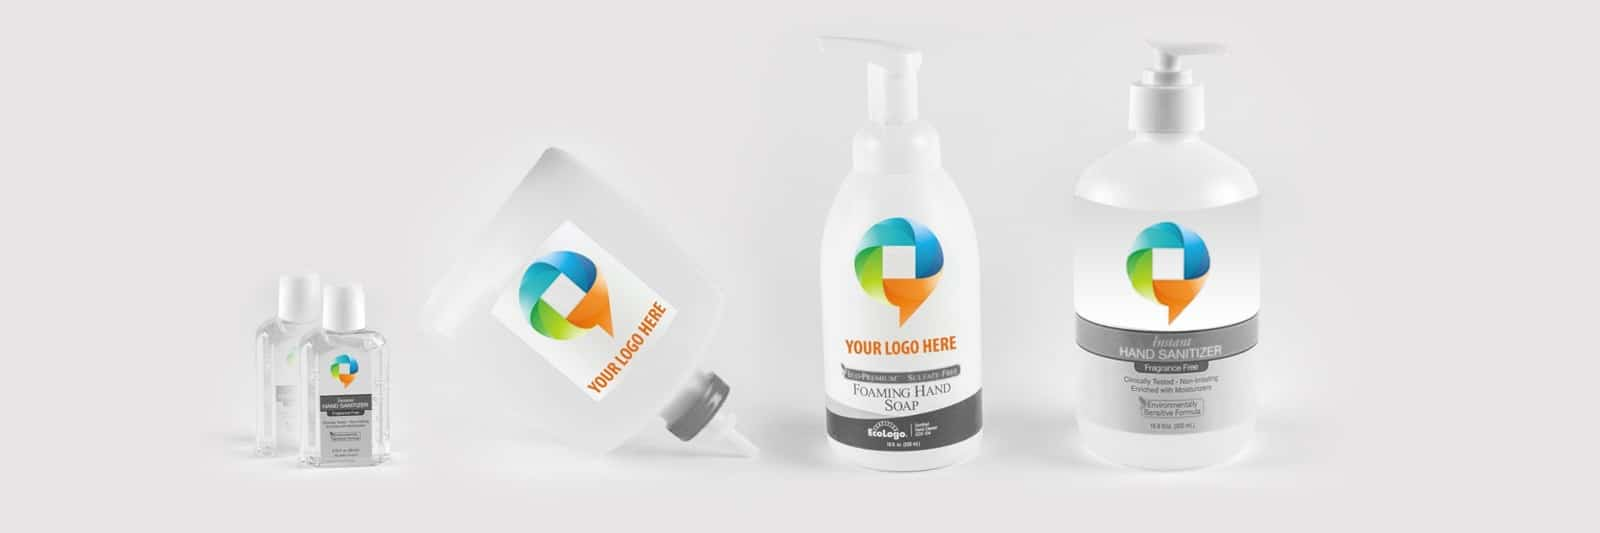 Private labeling for hand sanitizer, hand soap, lotion and dispenser refills